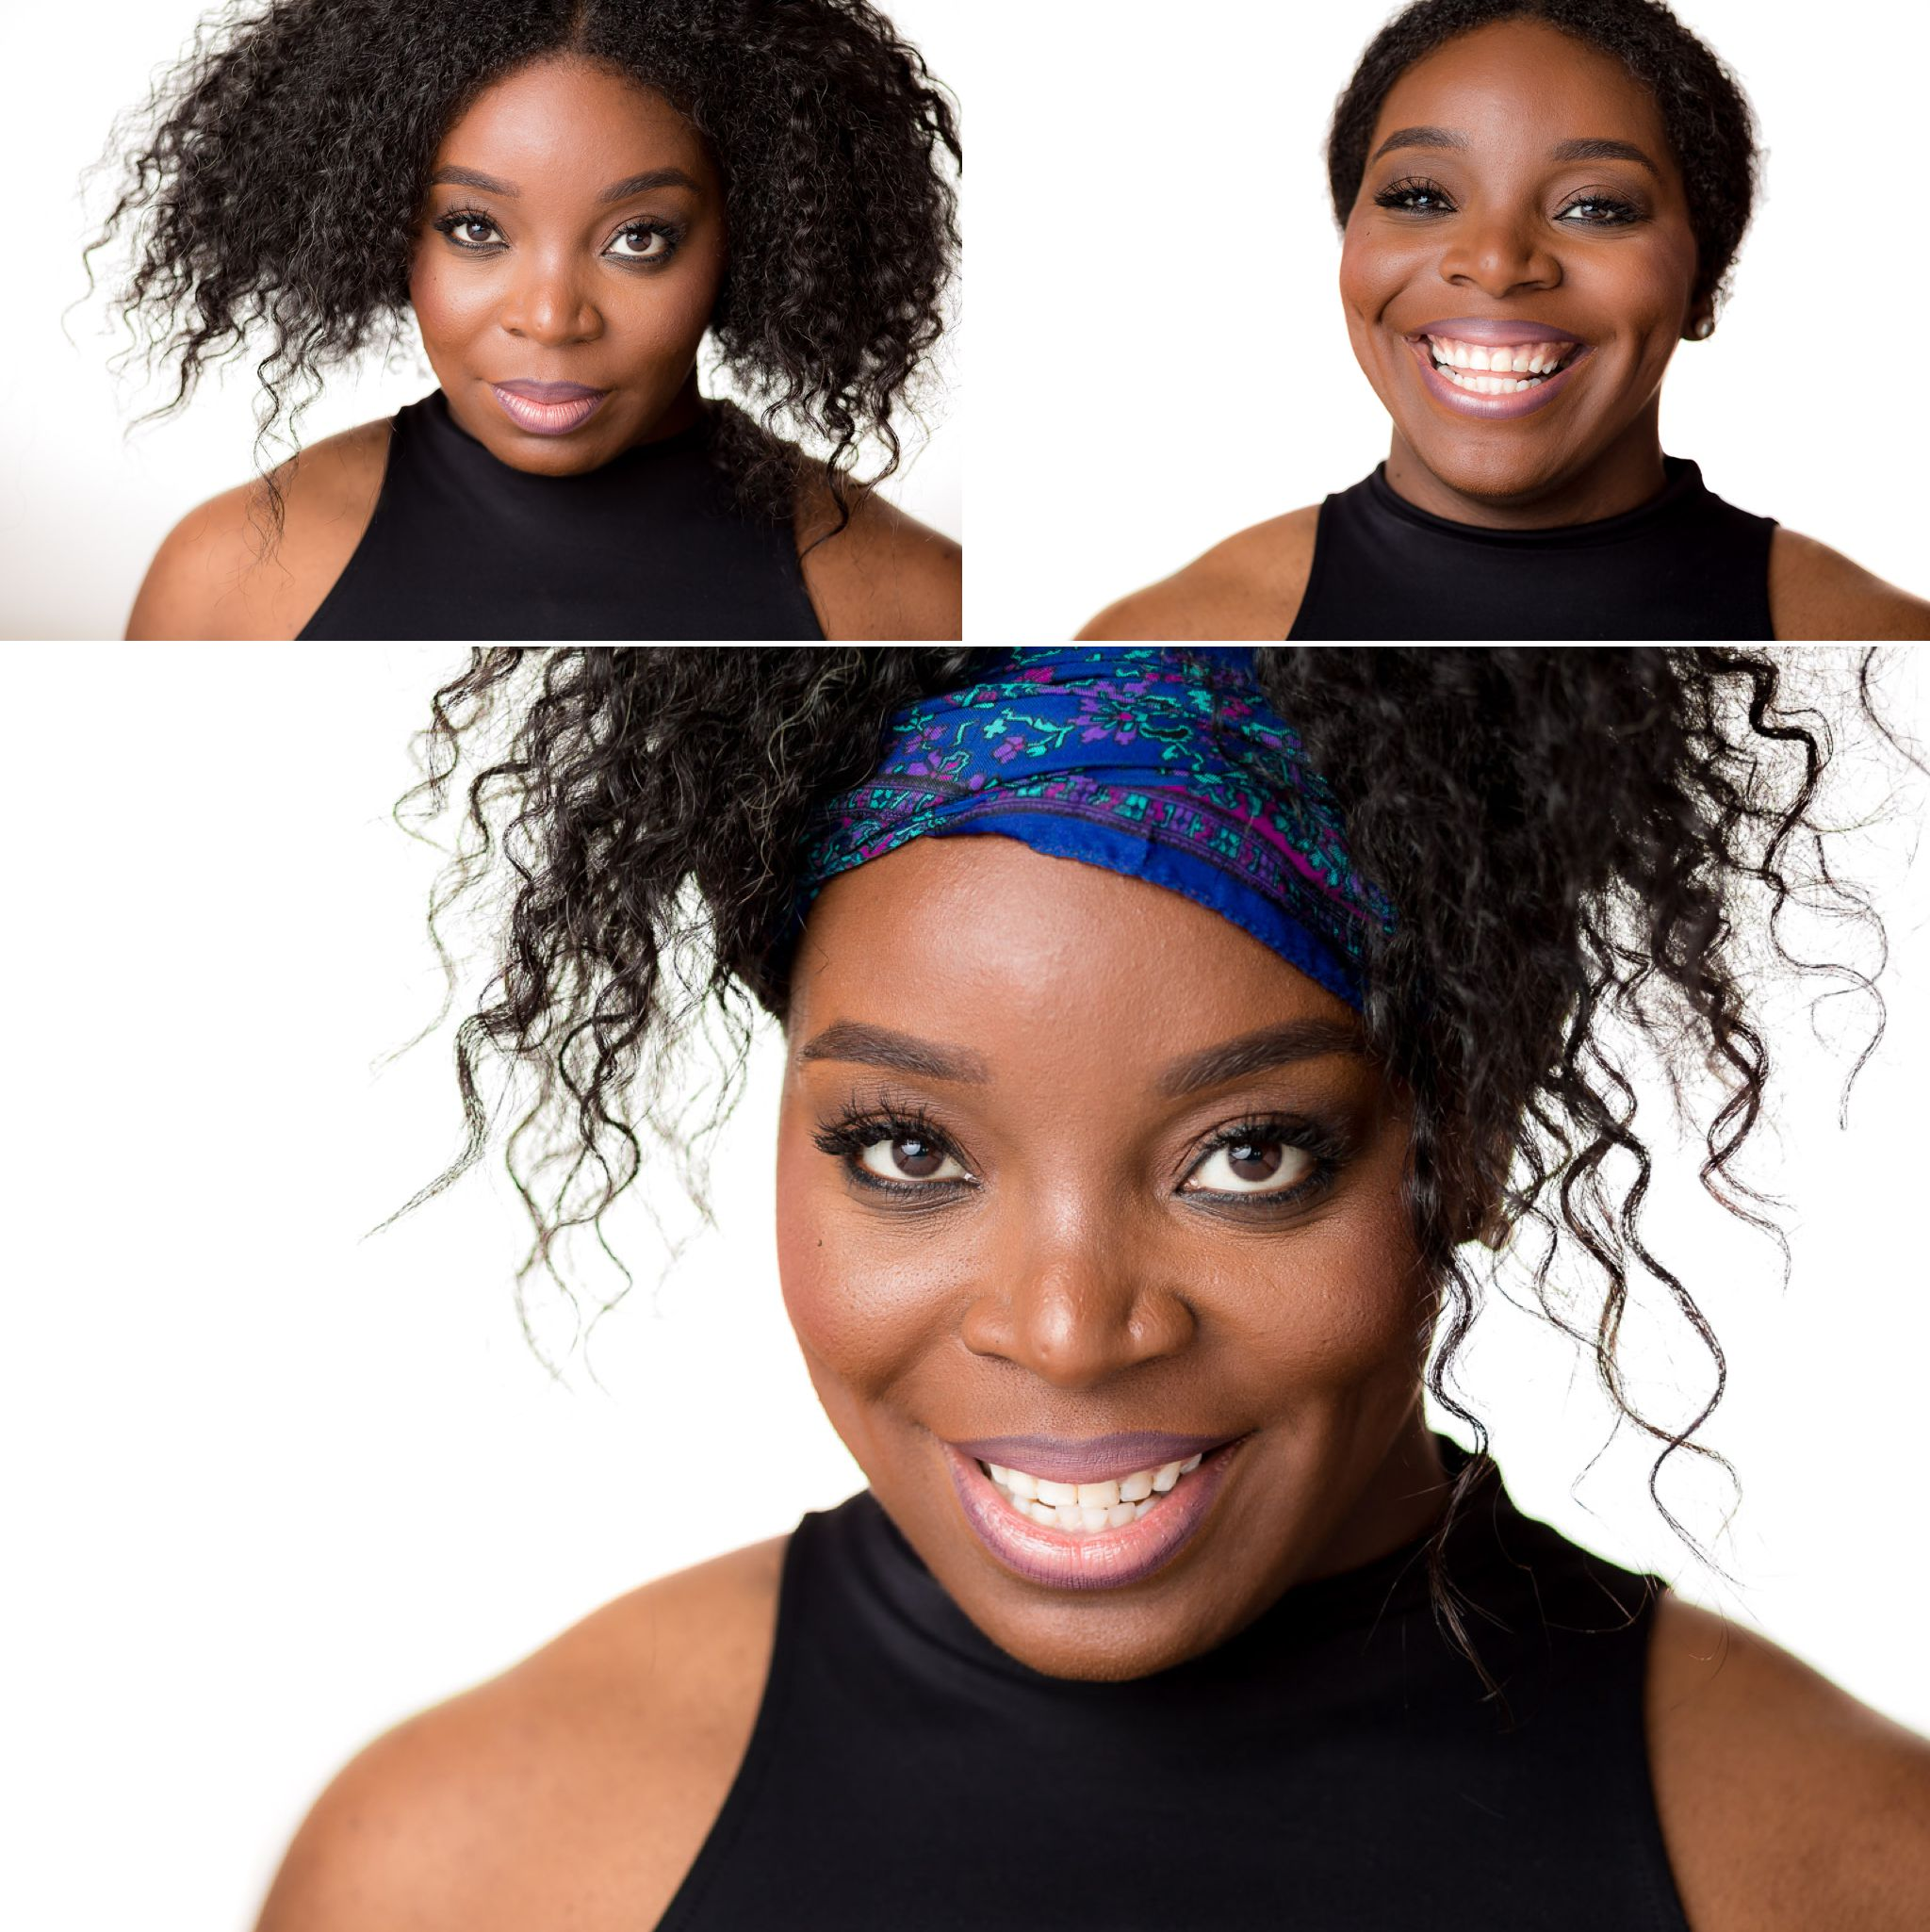 Women 2-Headshots-Washington-DC-Lenzy-Ruffin-Photography.jpg